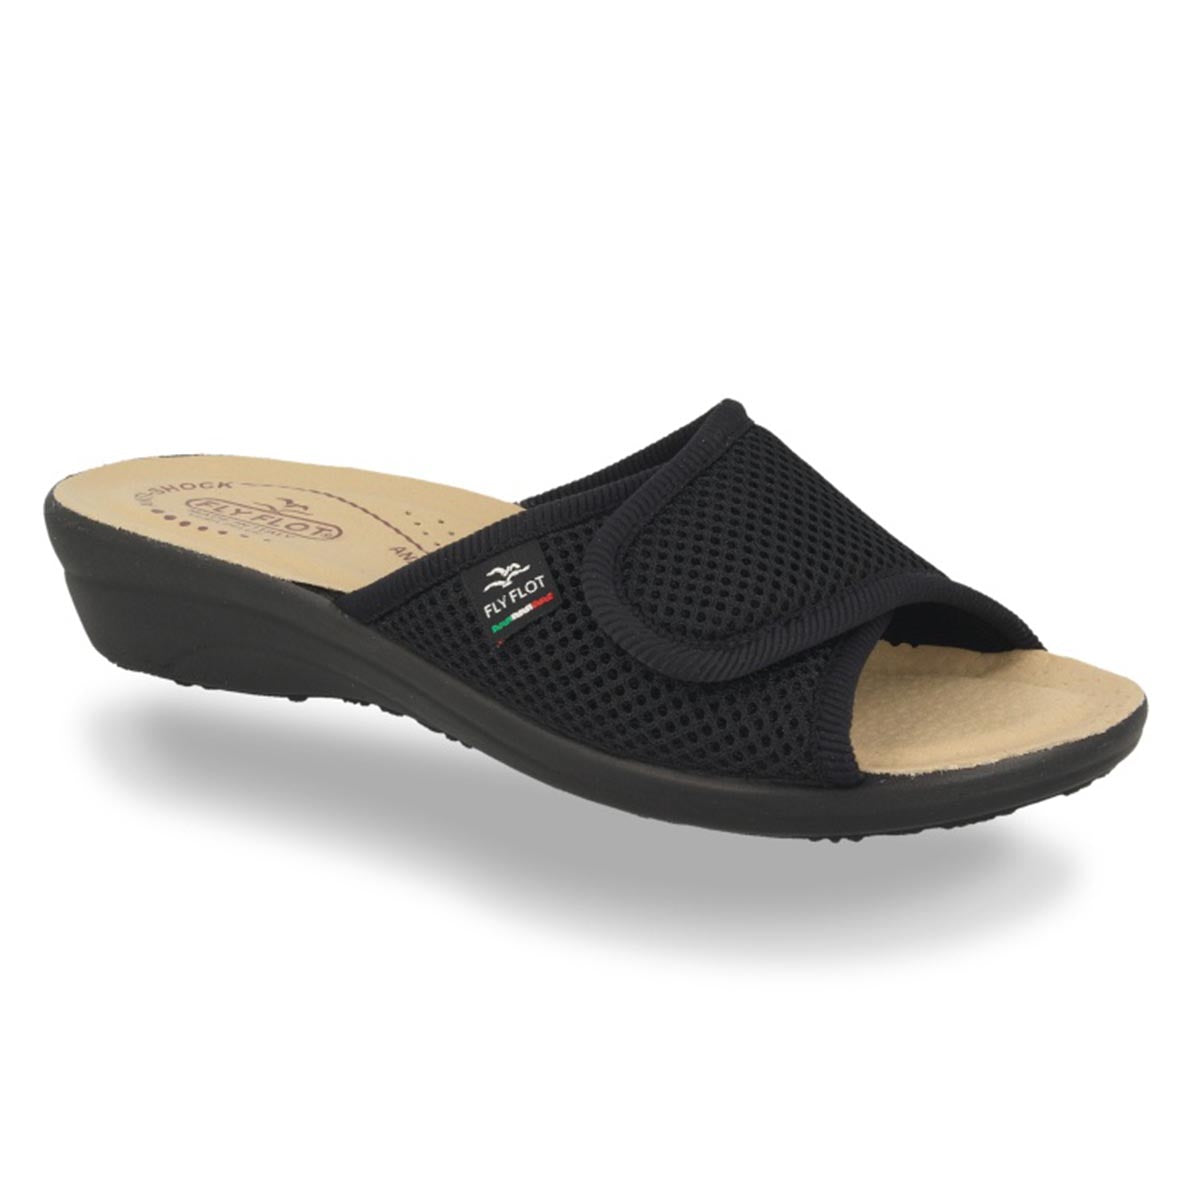 Cloth Woman Slipper Black (T4413fb)